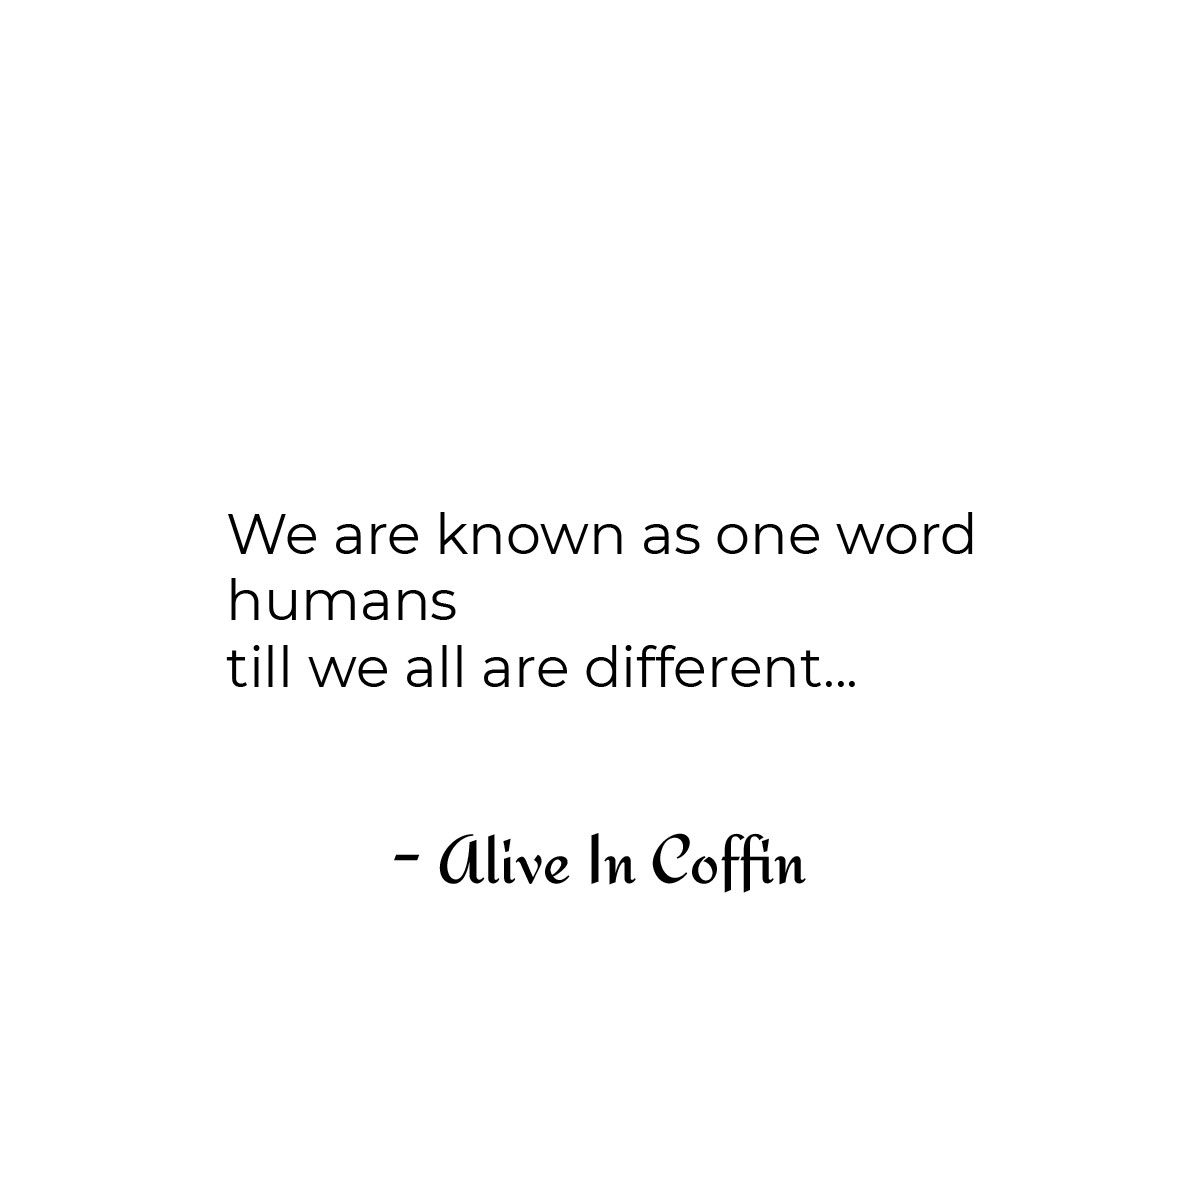 A short philosophical poem about the differences.